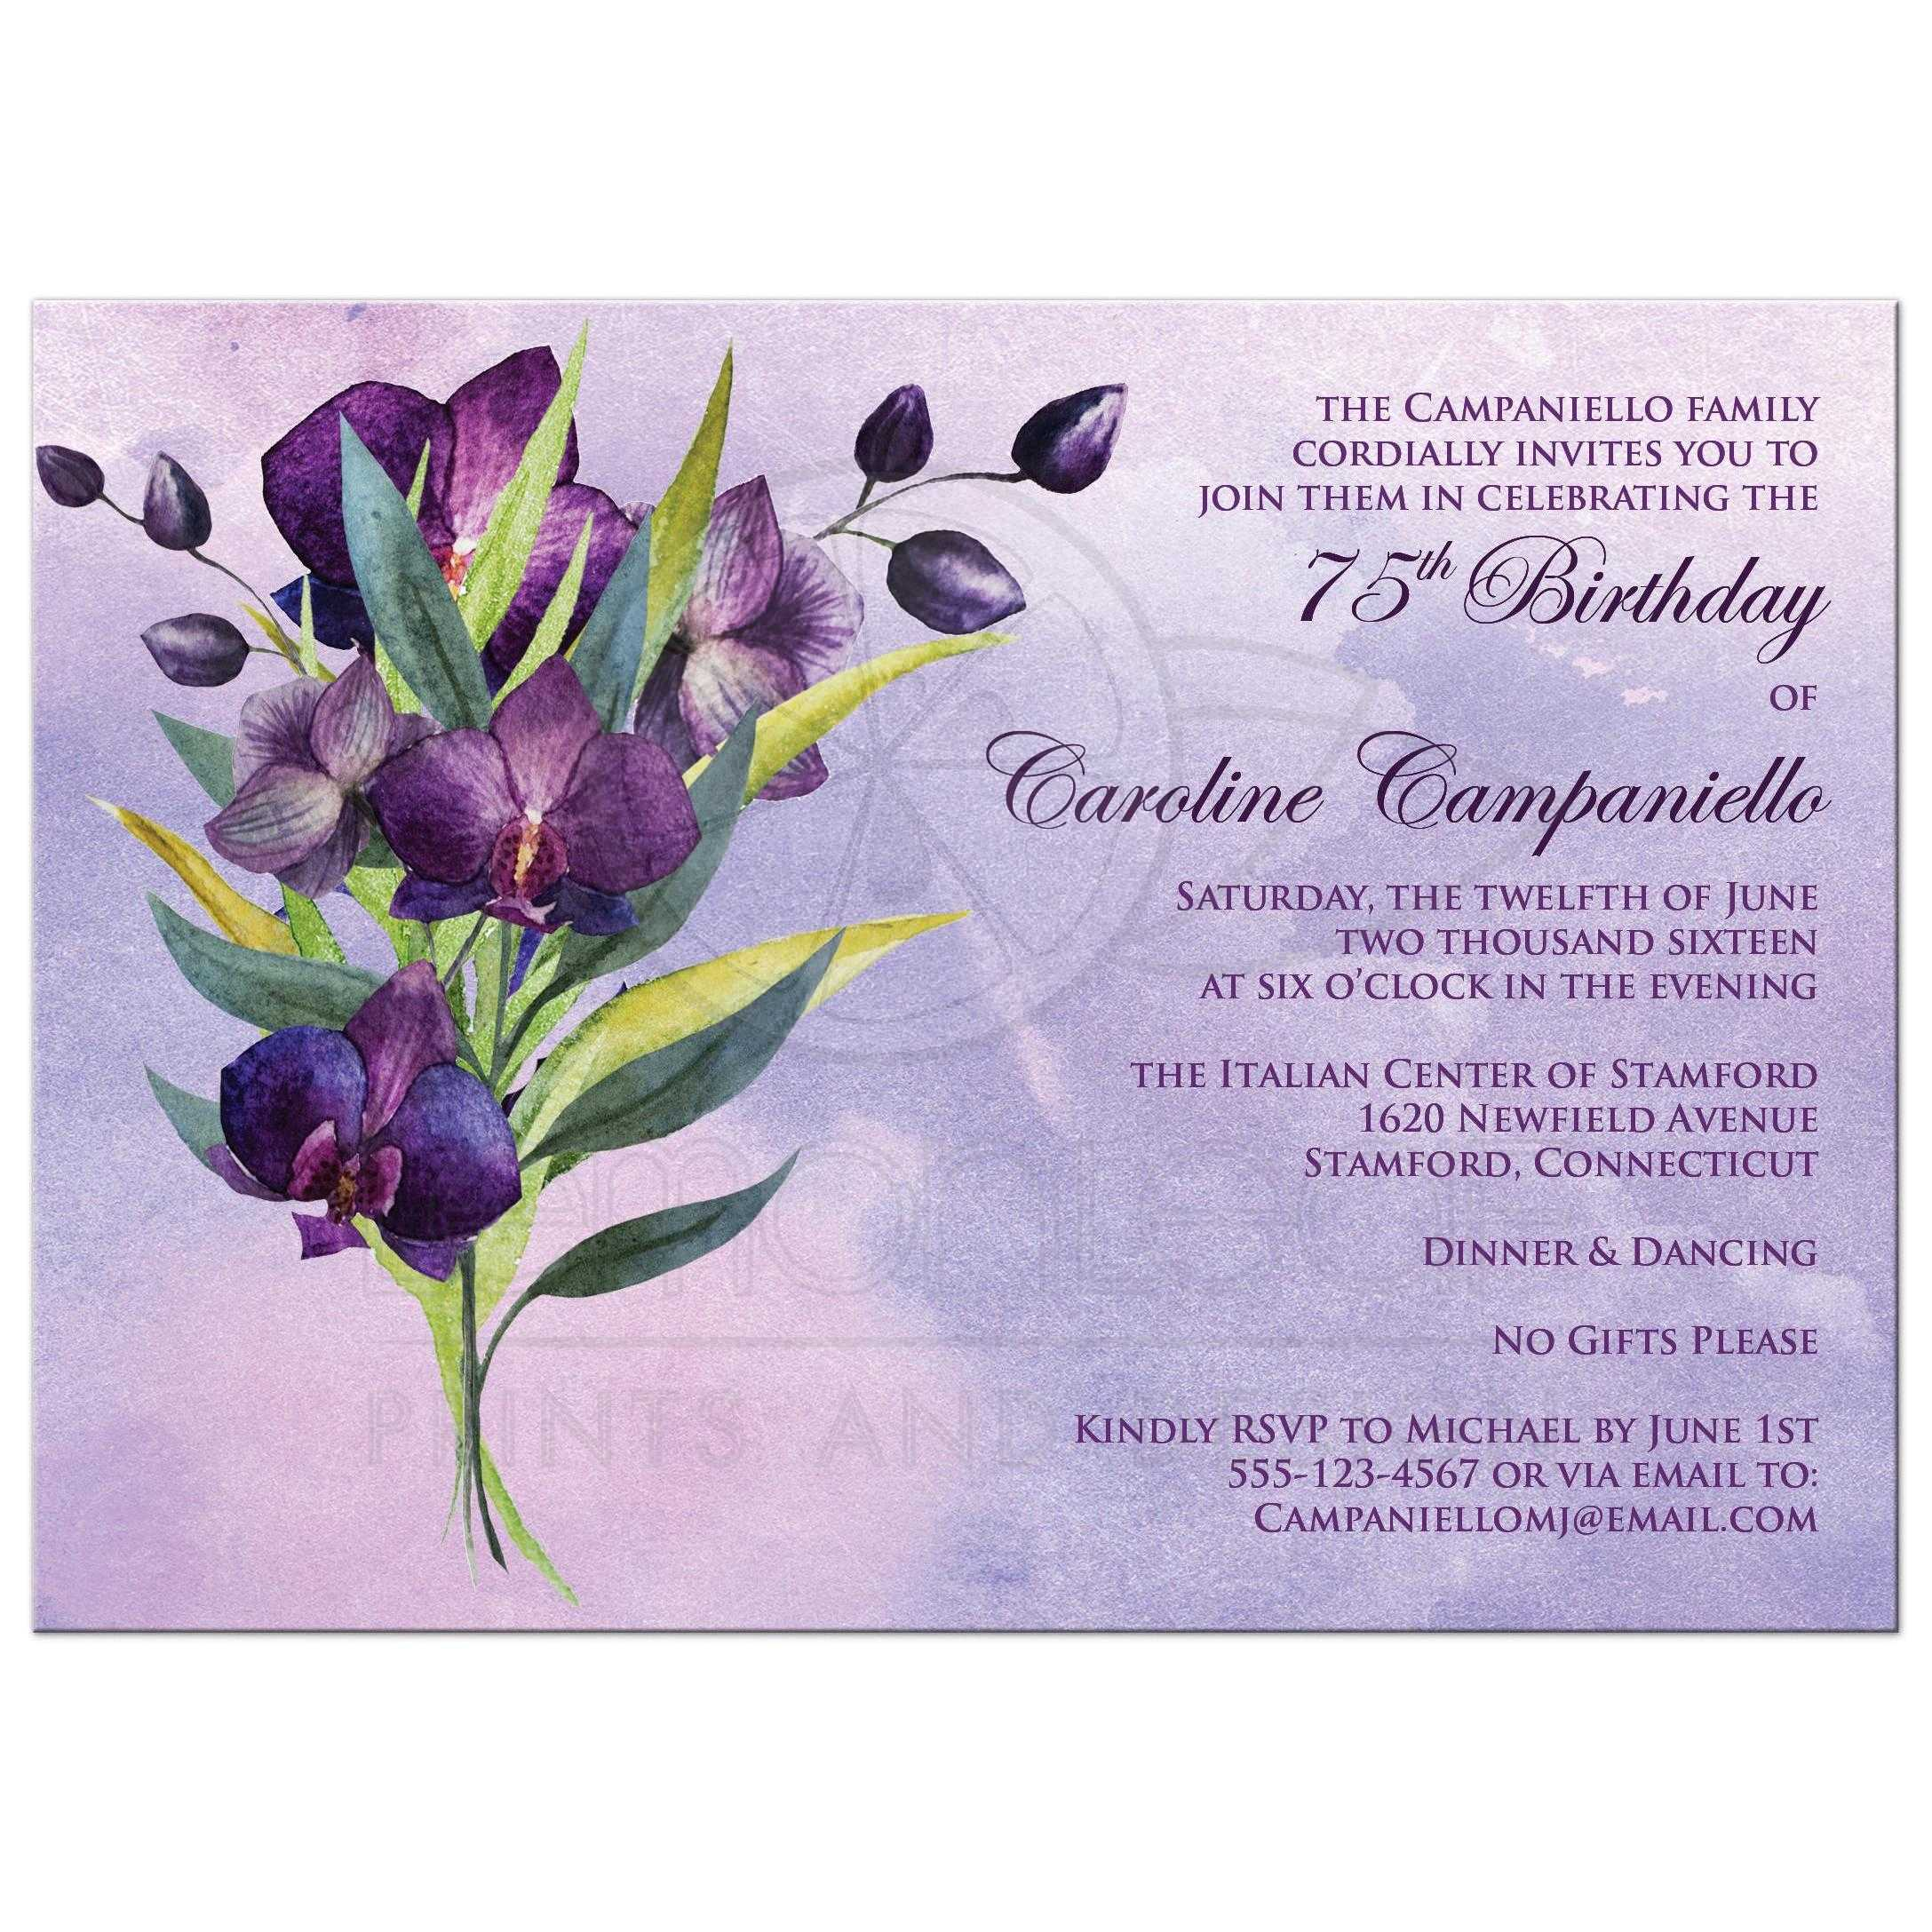 75th birthday party invitation purple orchids green foliage great purple orchids watercolor 75th birthday party invitation with green and yellow foliage stopboris Gallery